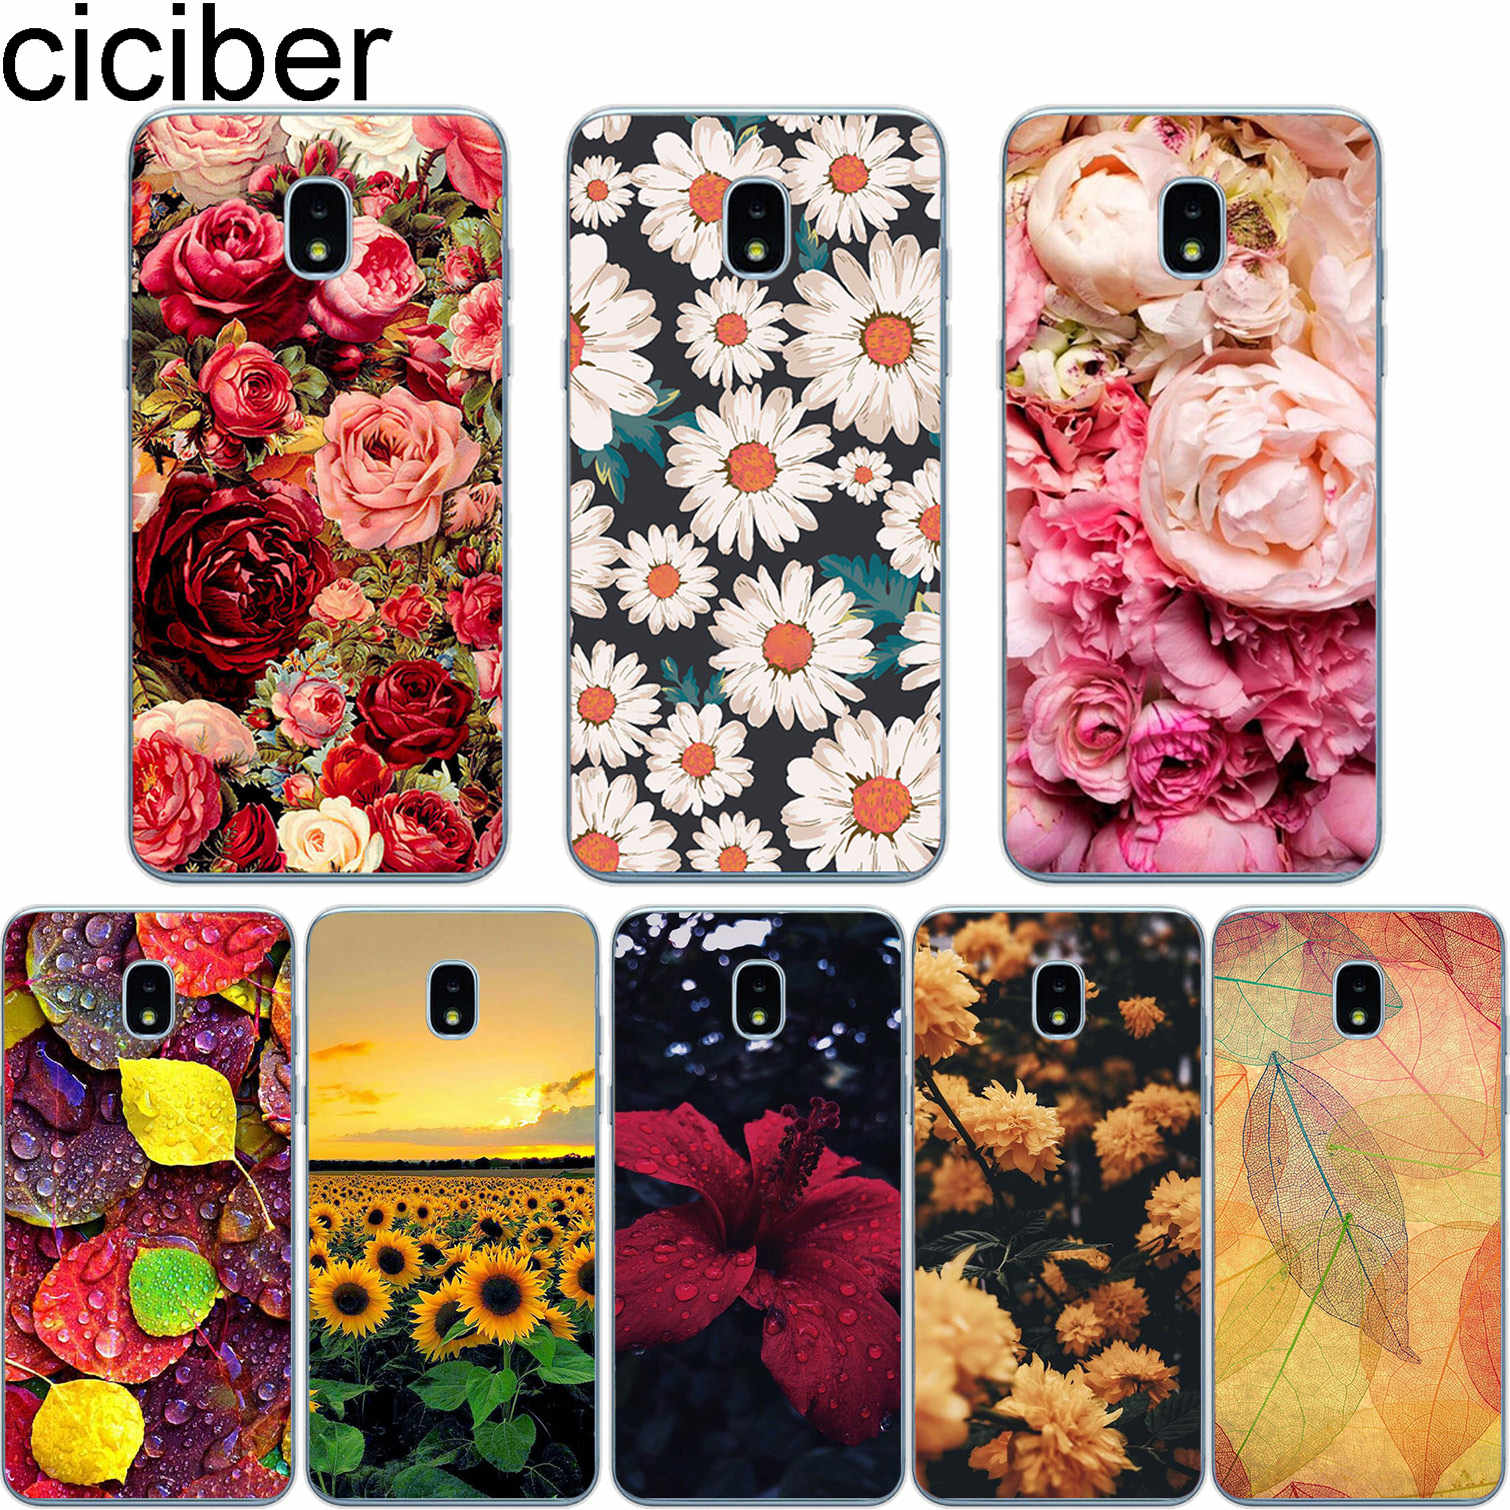 ciciber for Samsung Galaxy J6 J5 J7 J8 J1 J2 J3 J4 Pro Plus Core Prime mini 2017 2018 2016 Soft TPU Phone Cases Coque Flower